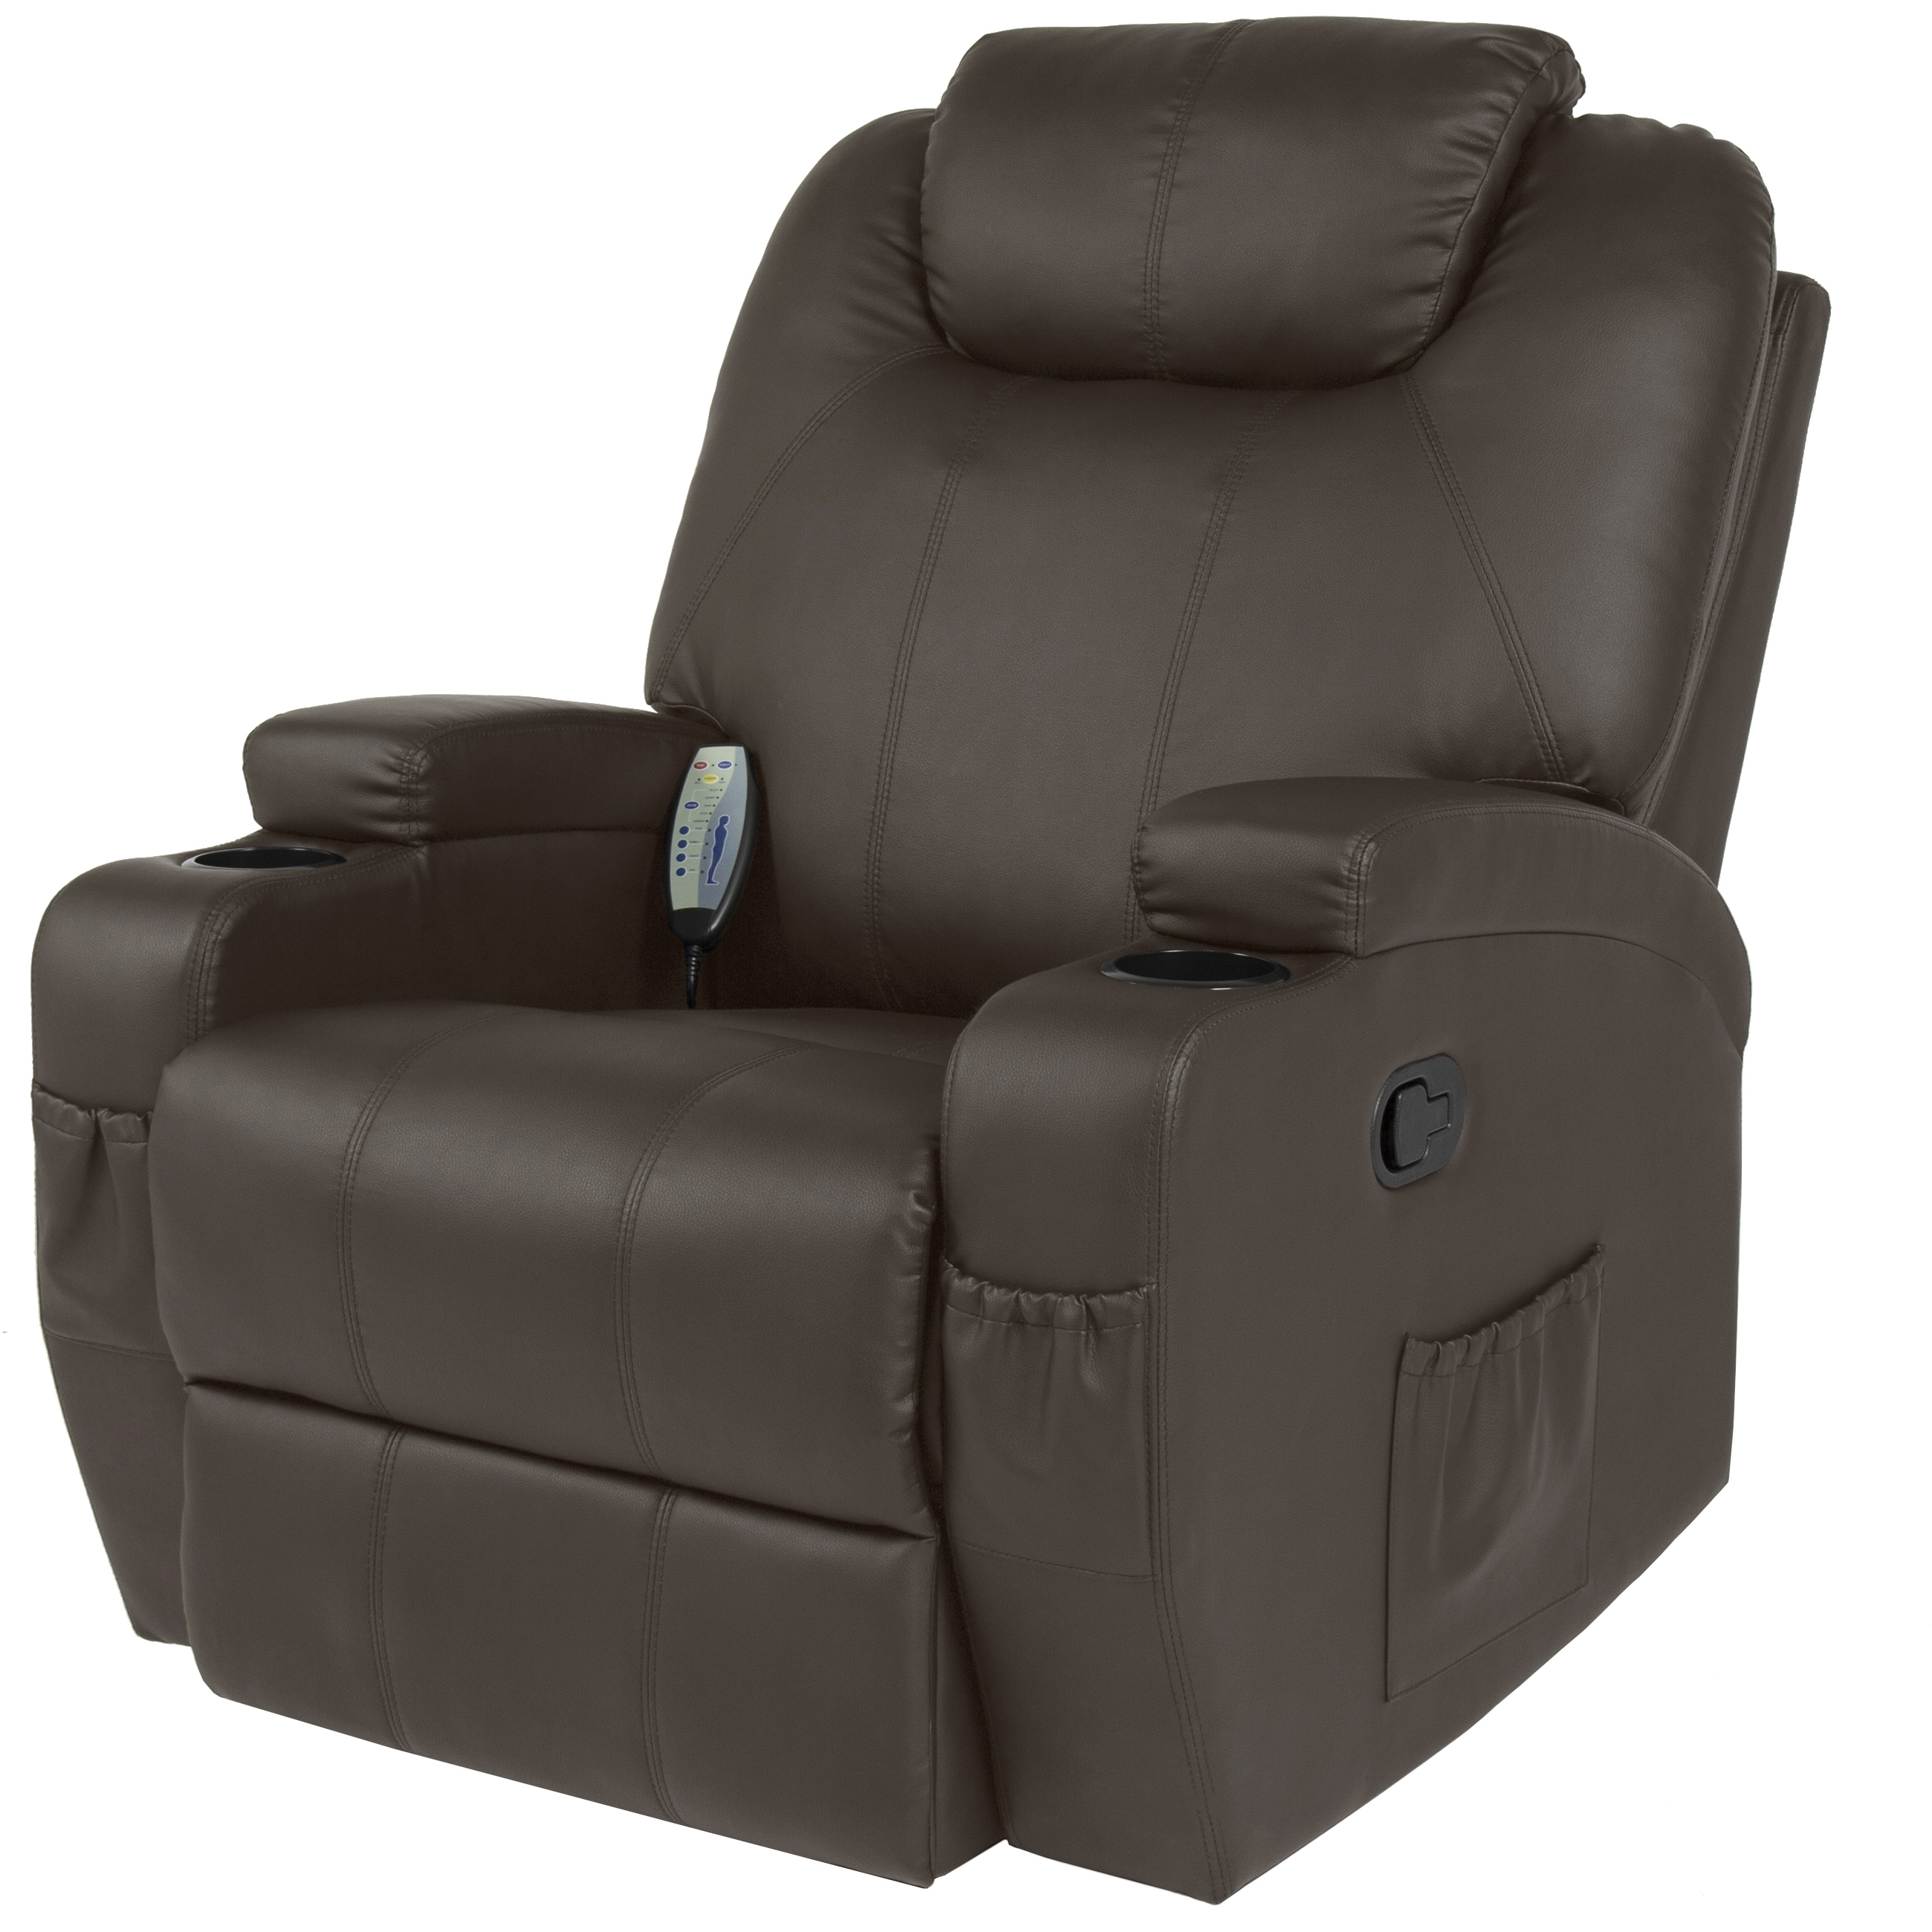 Fashionable Furniture: Walmart Recliners For Comfortable Armchair Design Ideas With Regard To Rocking Sofa Chairs (View 6 of 20)